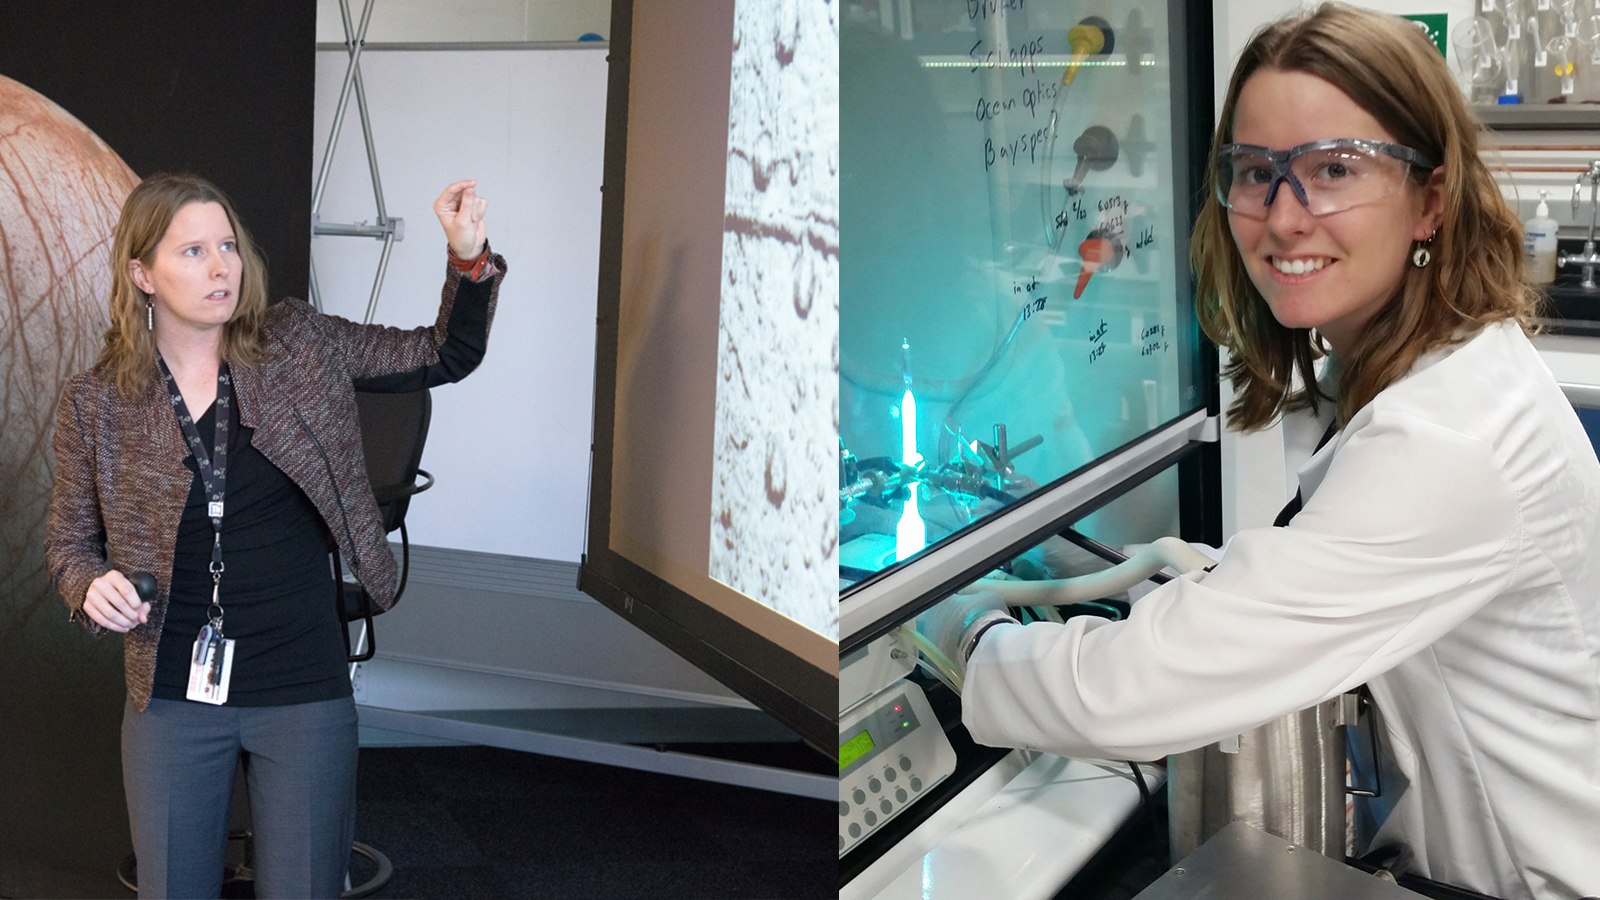 JPL research scientist and astrobiologist Morgan Cable is searching for life on ocean worlds